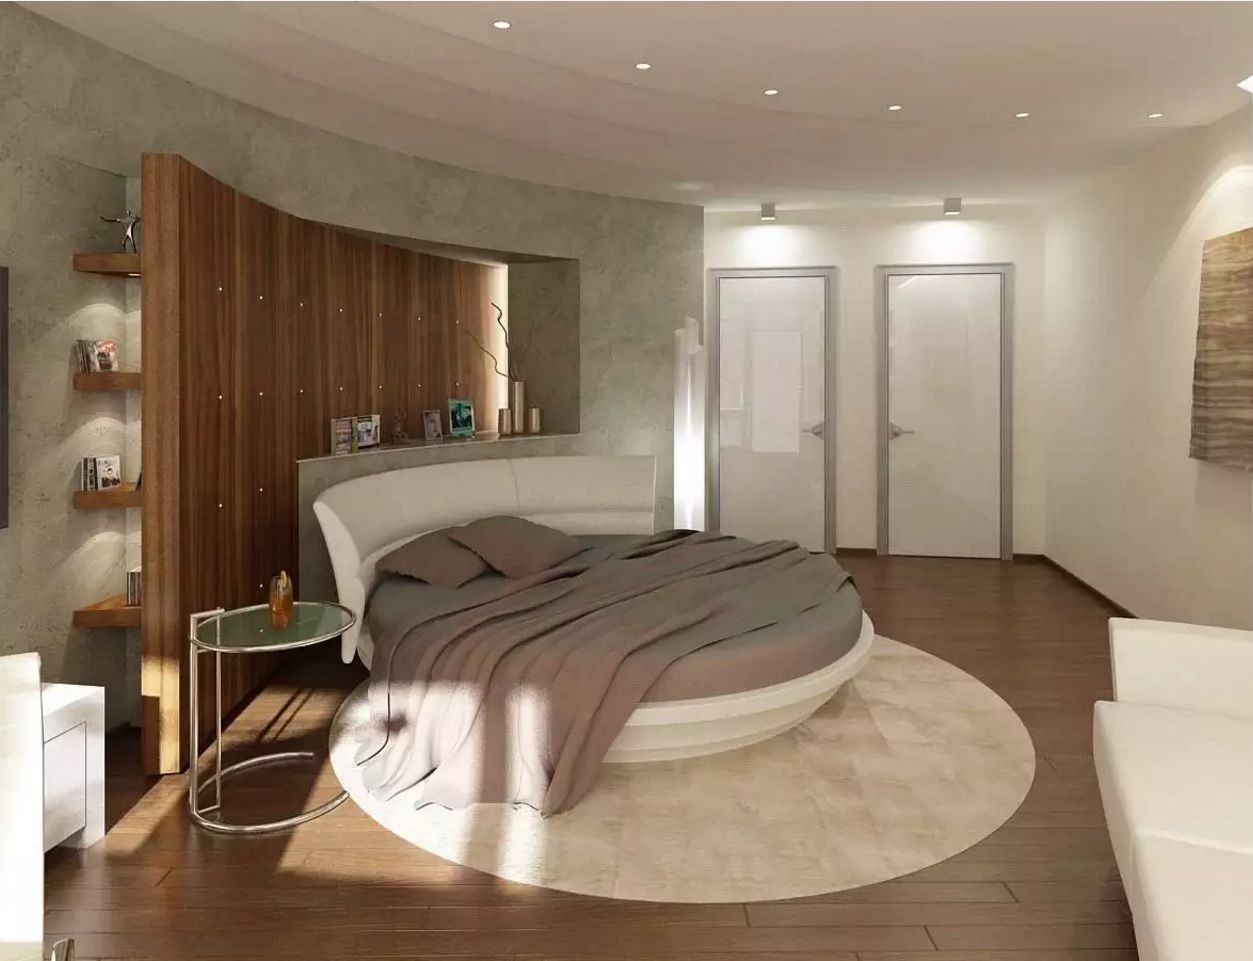 Circle Bed of Unique Bedroom Interior Design. Nice white creamy atmosphere in modern style